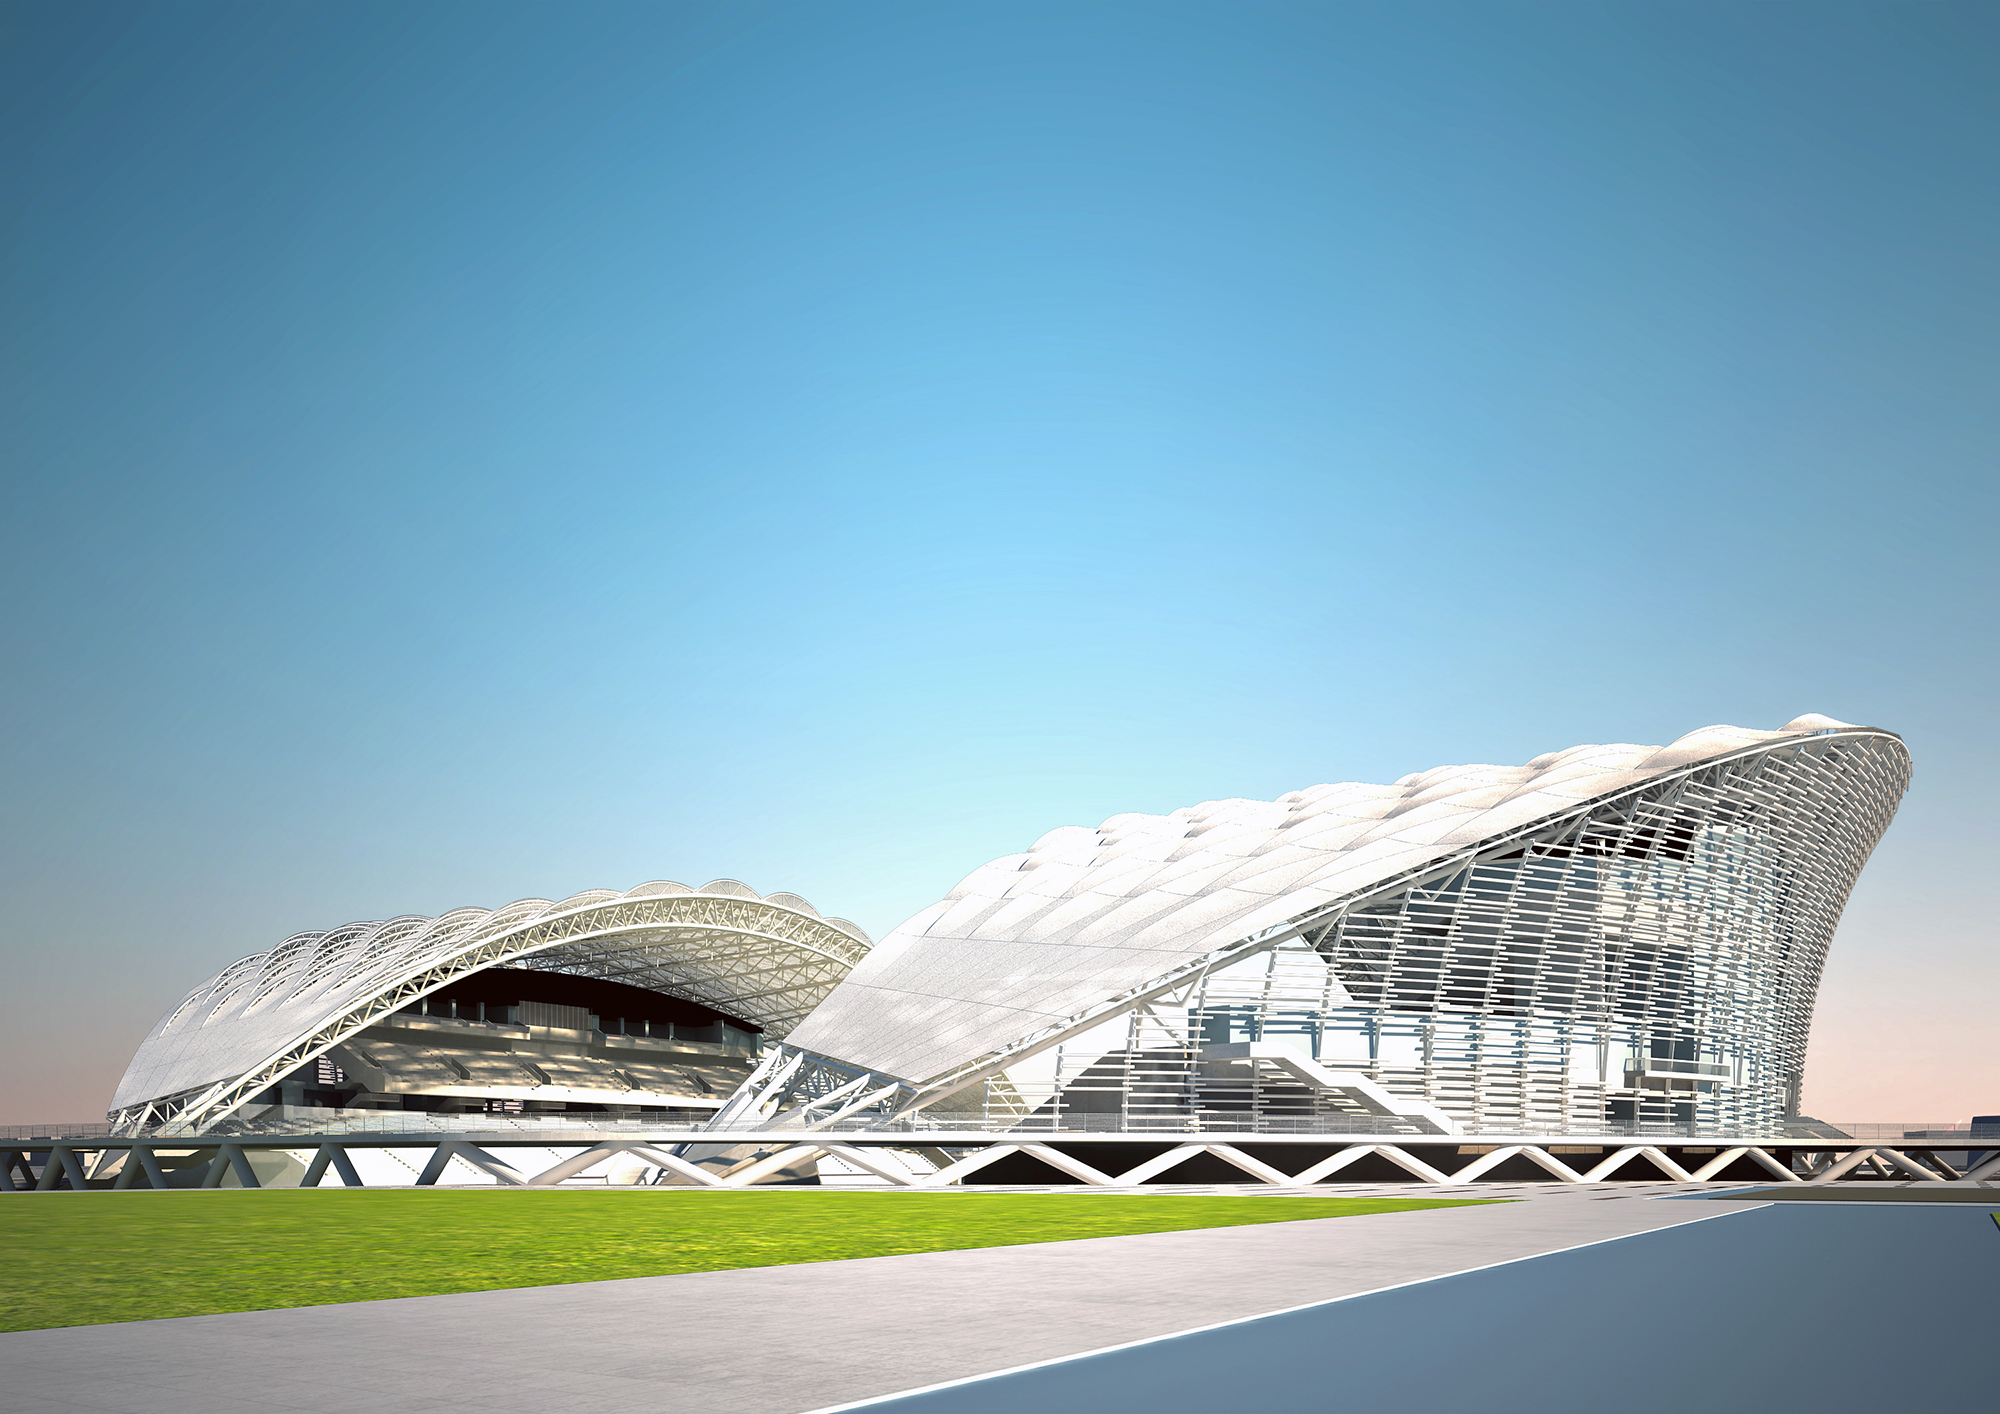 Kuwait University, Students Activities and Athletic Facilities